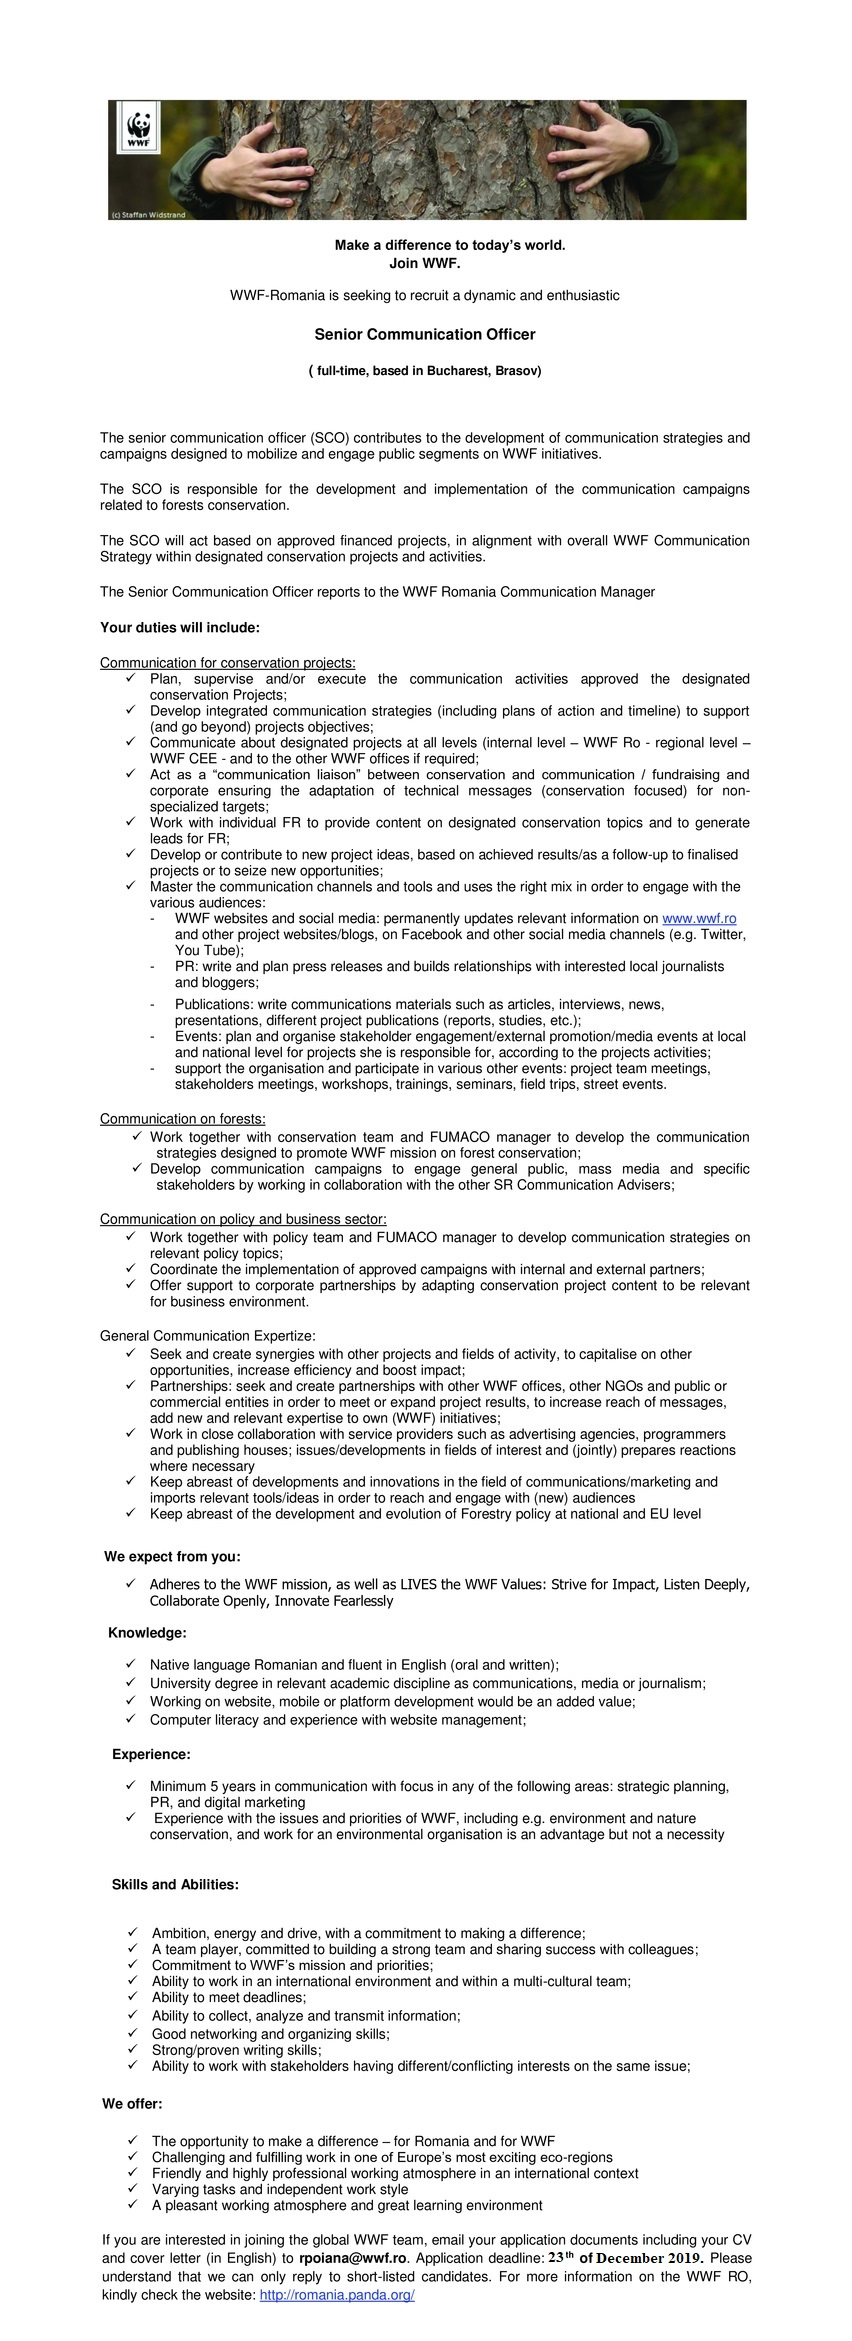 """Make a difference to today's world. Join WWF. WWF-Romania is seeking to recruit a dynamic and enthusiastic Senior Communication Officer ( full-time, based in Bucharest, Brasov)   The senior communication adviser (SCA) contributes to the development of communication strategies and campaigns designed to mobilize and engage public segments on WWF initiatives. The SCA is responsible for the development and implementation of the communication campaigns related to forests conservation, policy and business sector engagement. The SCA will act based on approved financed projects, in alignment with overall WWF Communication Strategy within designated conservation projects and activities. The Senior Communication Adviser reports to the WWF Romania Communication Manager.  Your duties will include: Communication for conservation projects: Plan, supervise and/or execute the communication activities approved the designated conservation Projects; Develop integrated communication strategies (including plans of action and timeline) to support (and go beyond) projects objectives; Communicate about designated projects at all levels (internal level – WWF Ro - regional level – WWF CEE - and to the other WWF offices if required; Act as a """"communication liaison"""" between conservation and communication / fundraising and corporate ensuring the adaptation of technical messages (conservation focused) for non-specialized targets; Work with individual FR to provide content on designated conservation topics and to generate leads for FR; Develop or contribute to new project ideas, based on achieved results/as a follow-up to finalised projects or to seize new opportunities; Master the communication channels and tools and uses the right mix in order to engage with the various audiences:  WWF websites and social media: permanently updates relevant information on www.wwf.ro and other project websites/blogs, on Facebook and other social media channels (e.g. Twitter, You Tube); PR: write and plan press r"""